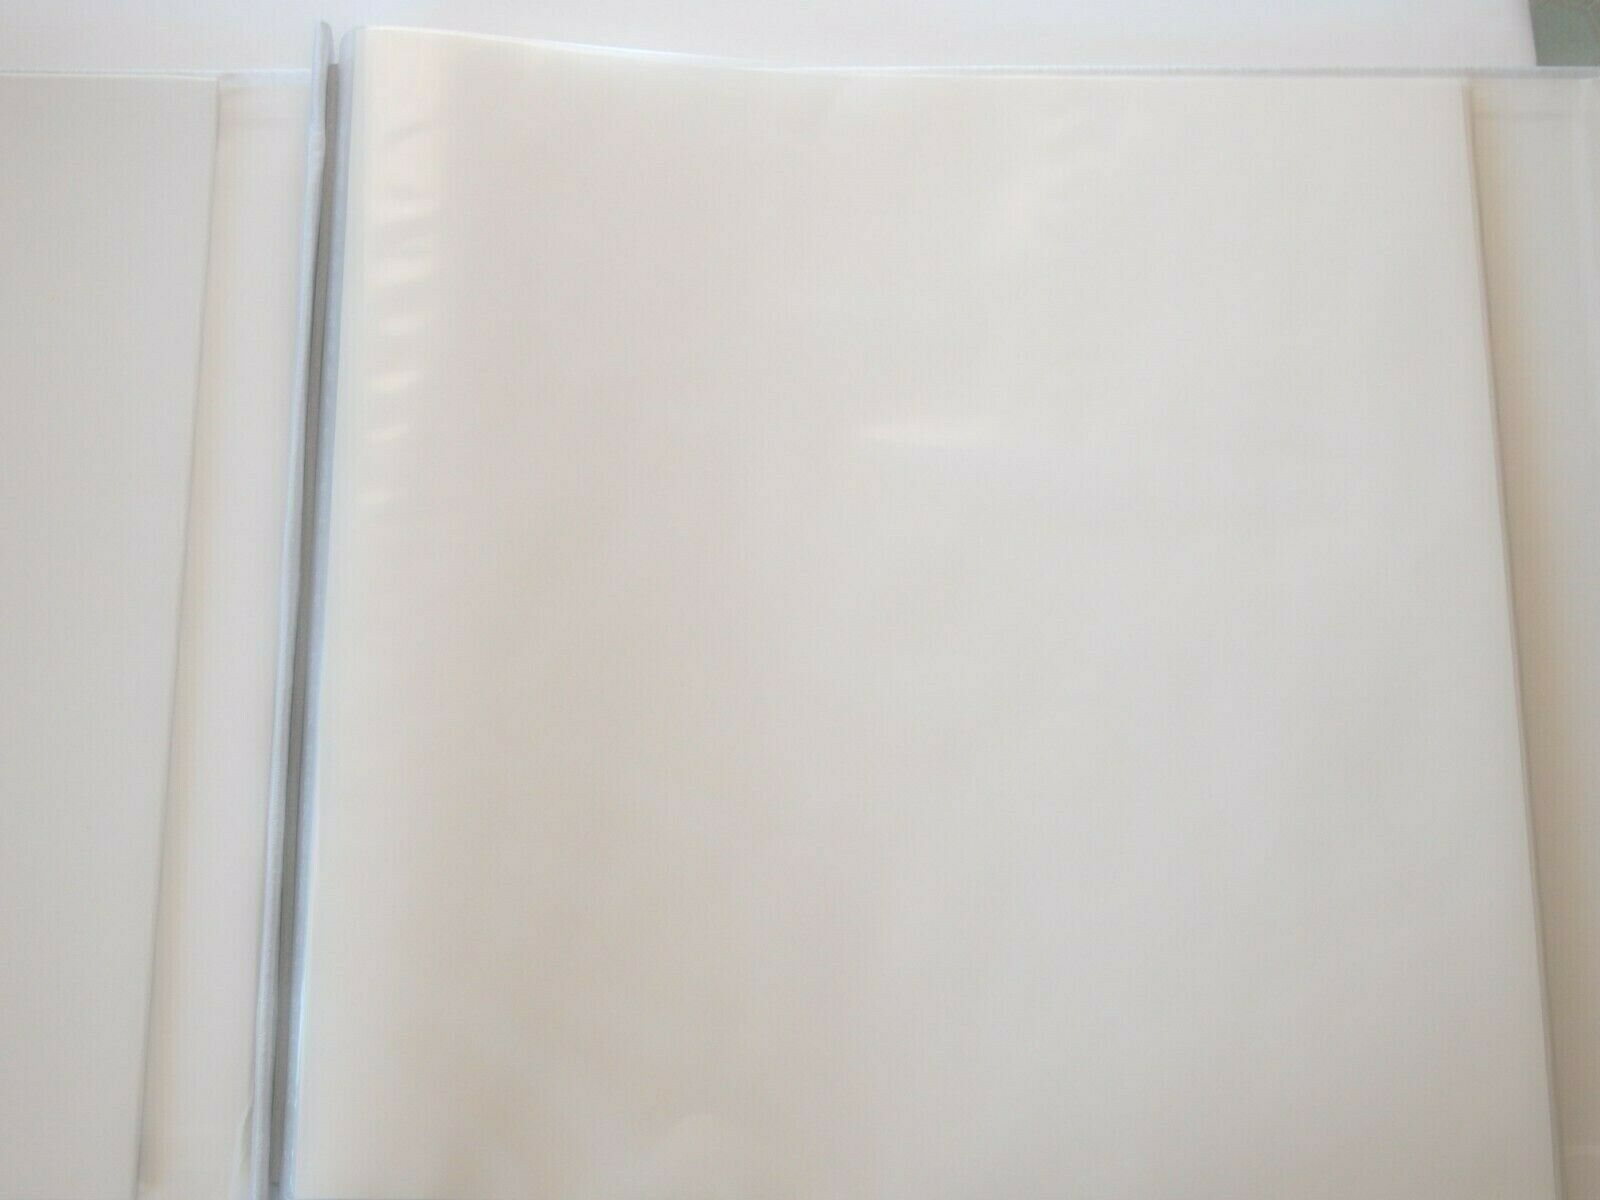 SCRAPBOOK PHOTOGRAPH ALBUM WHITE PHOTO PICTURE FRAME COVER 12X12 LOVE PAGE KIT - $15.64